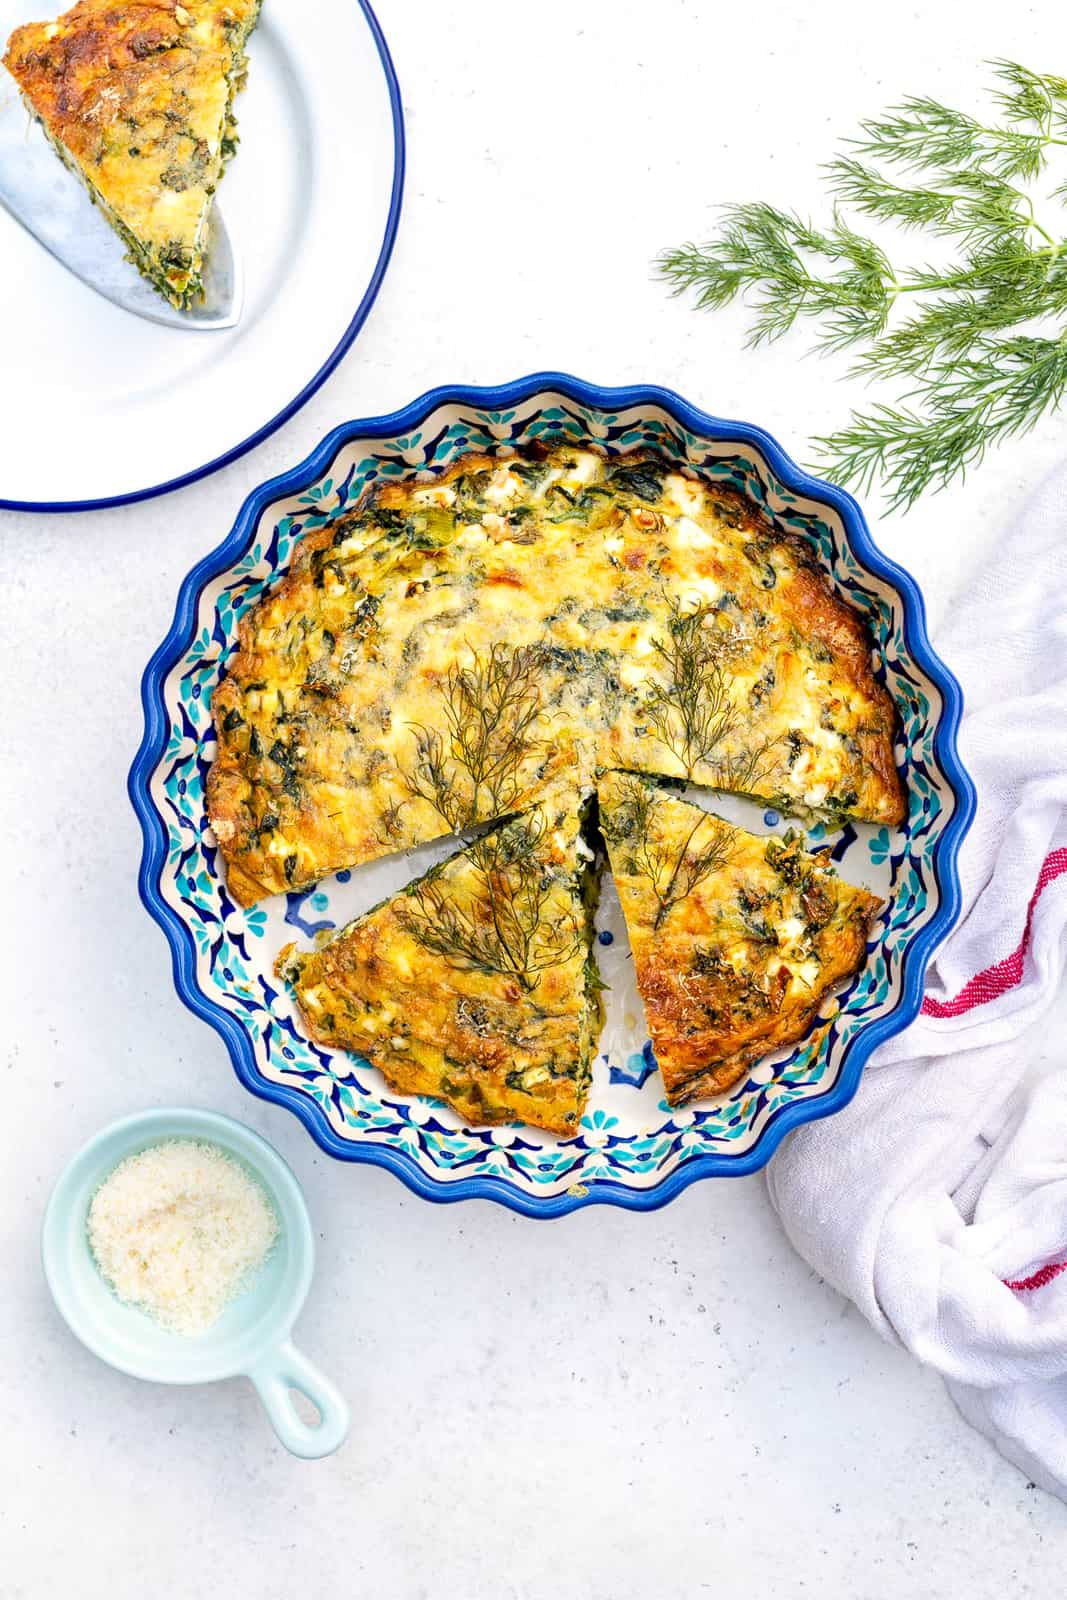 Easy Crustless Spinach Quiche